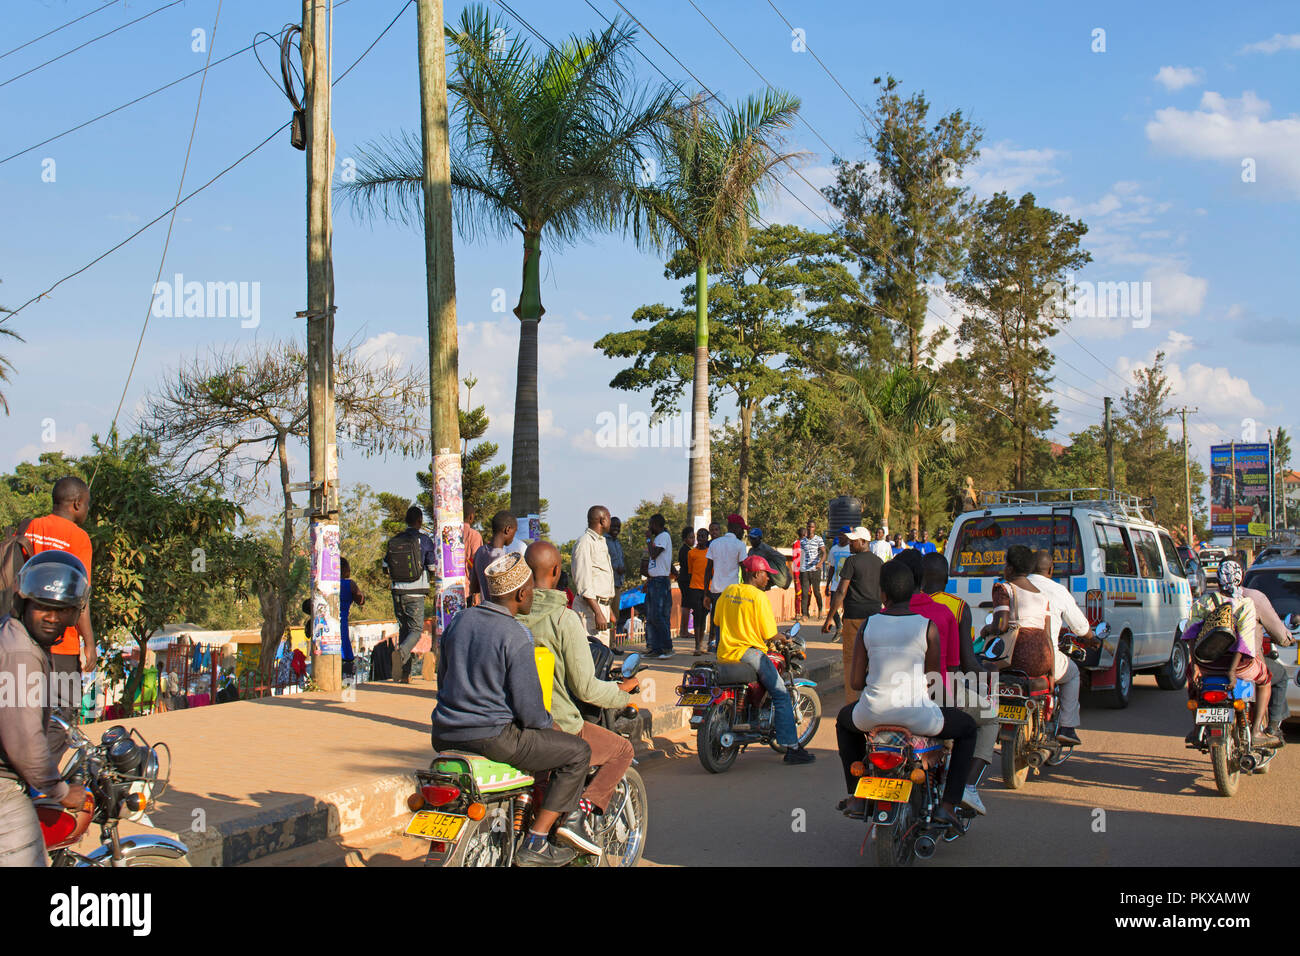 Busy City Street with Traffic and People, Transport, Transportation in Mbarara Town, Uganda, East Africa - Stock Image